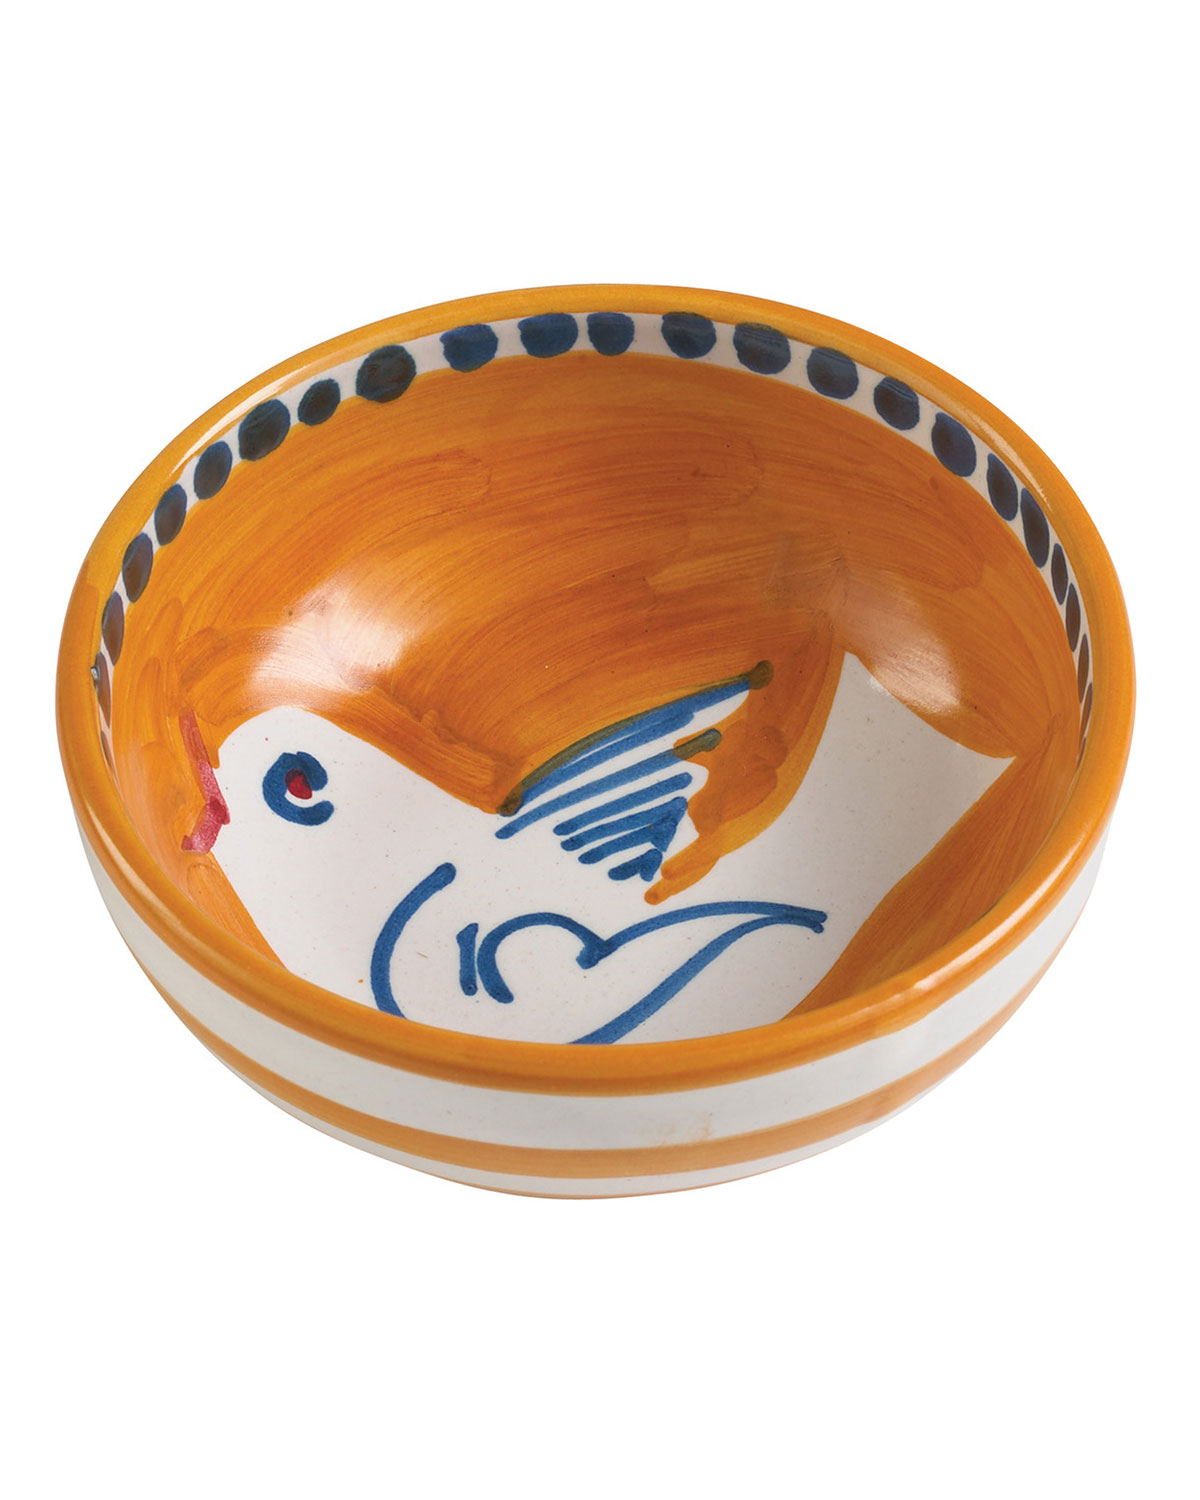 Vietriuccello Olive Oil Bowl